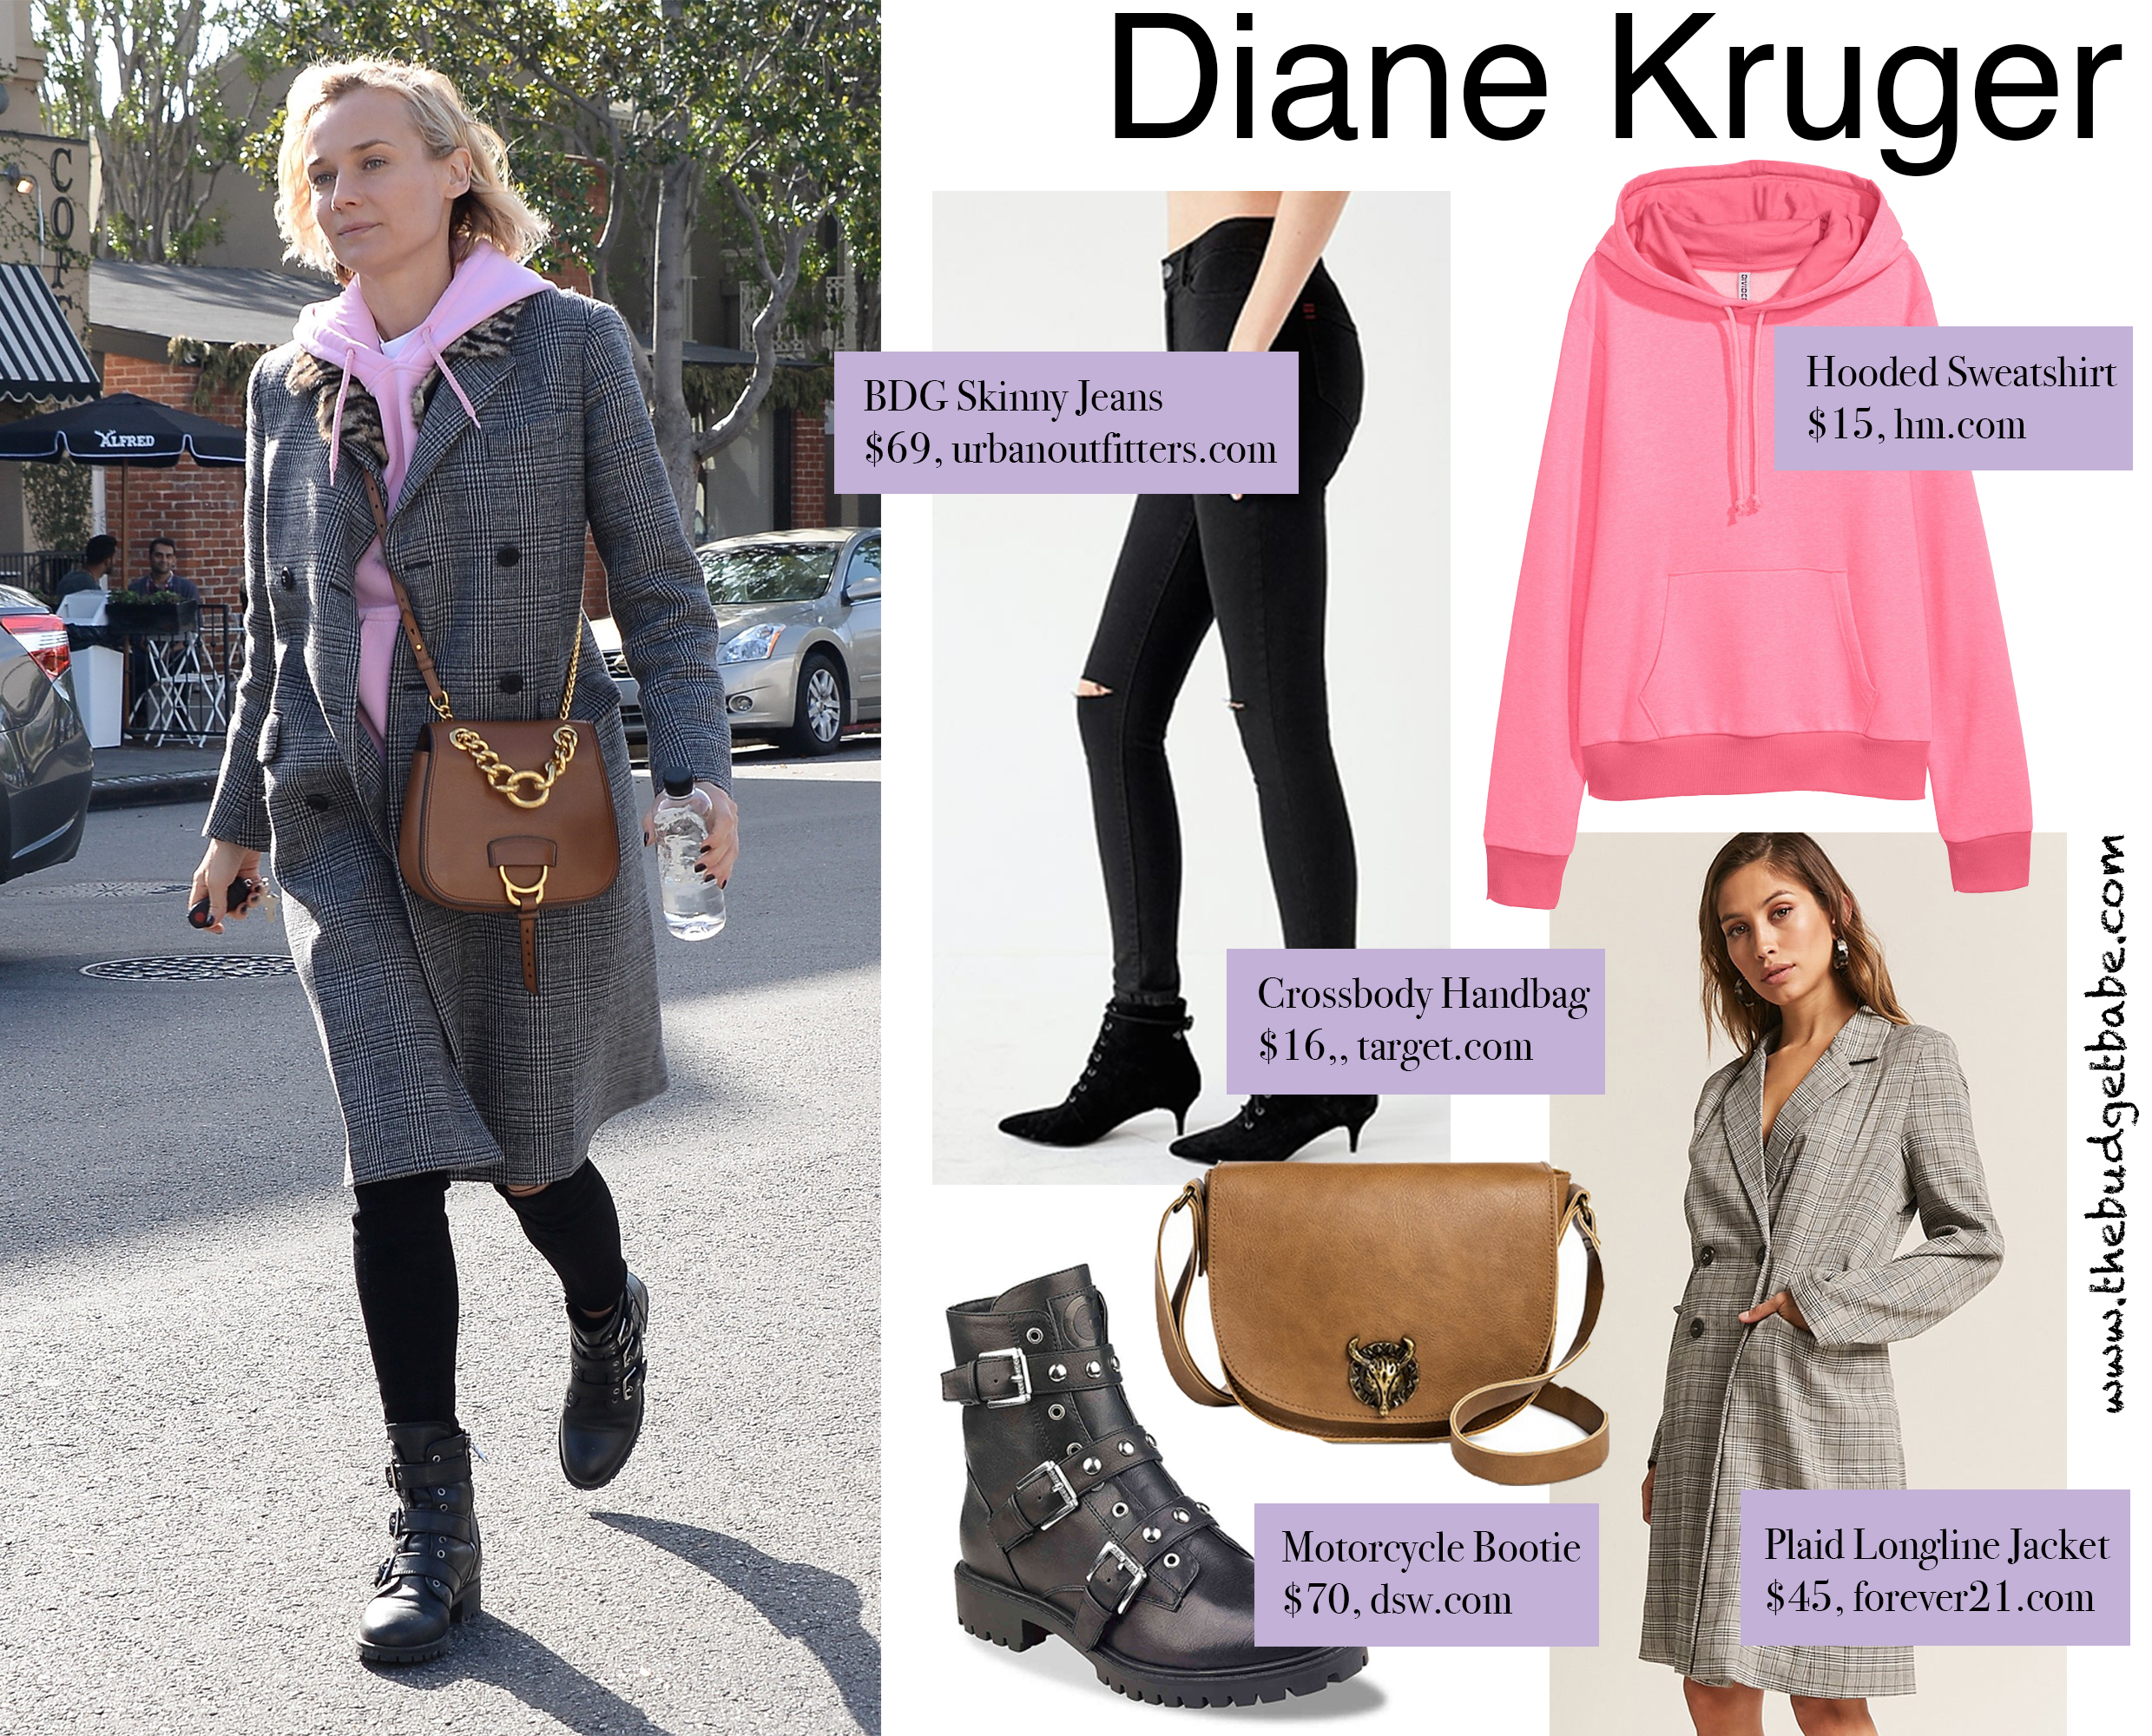 Diane Kruger looks cool and casual in her pink hoodie and Miu Miu bag.